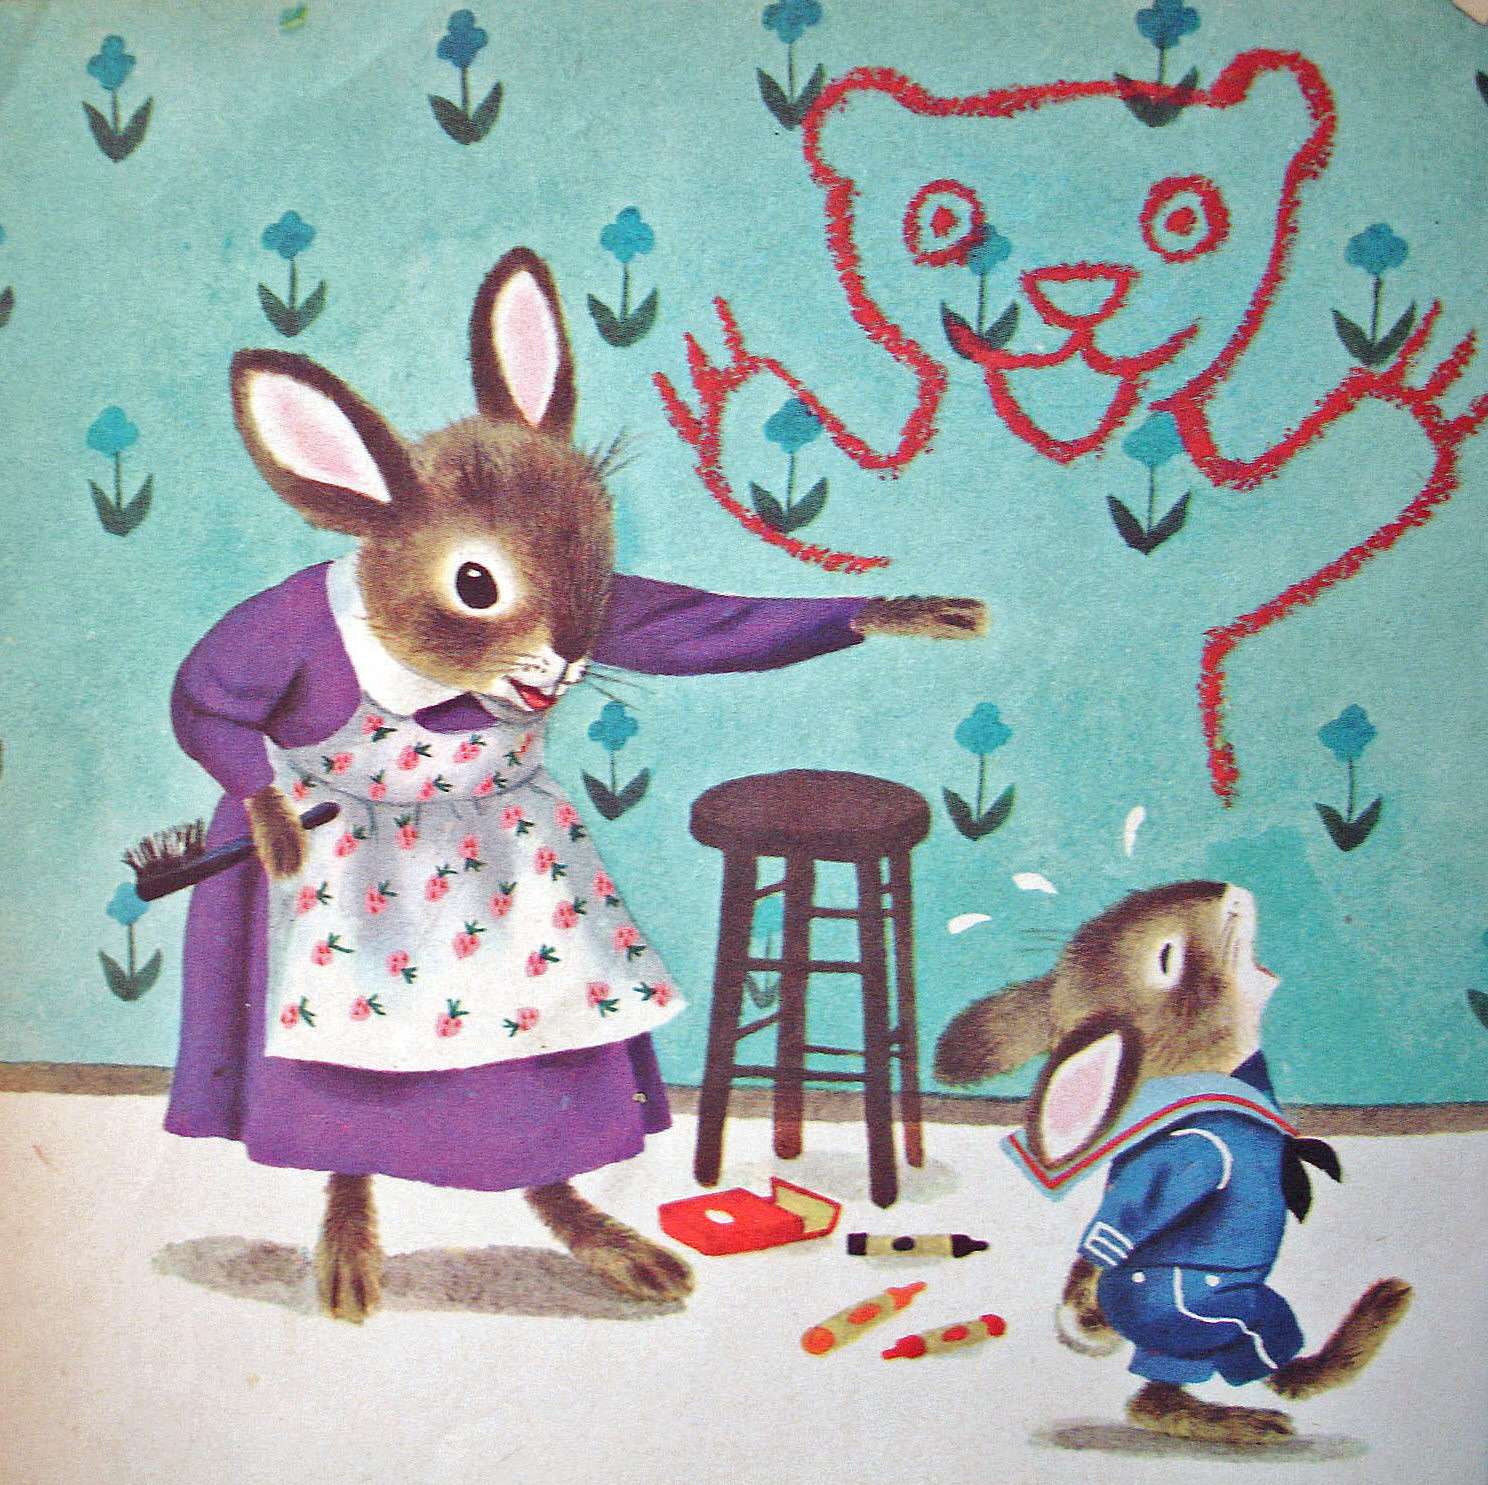 From 'The Naughty Bunny' by Richard Scarry